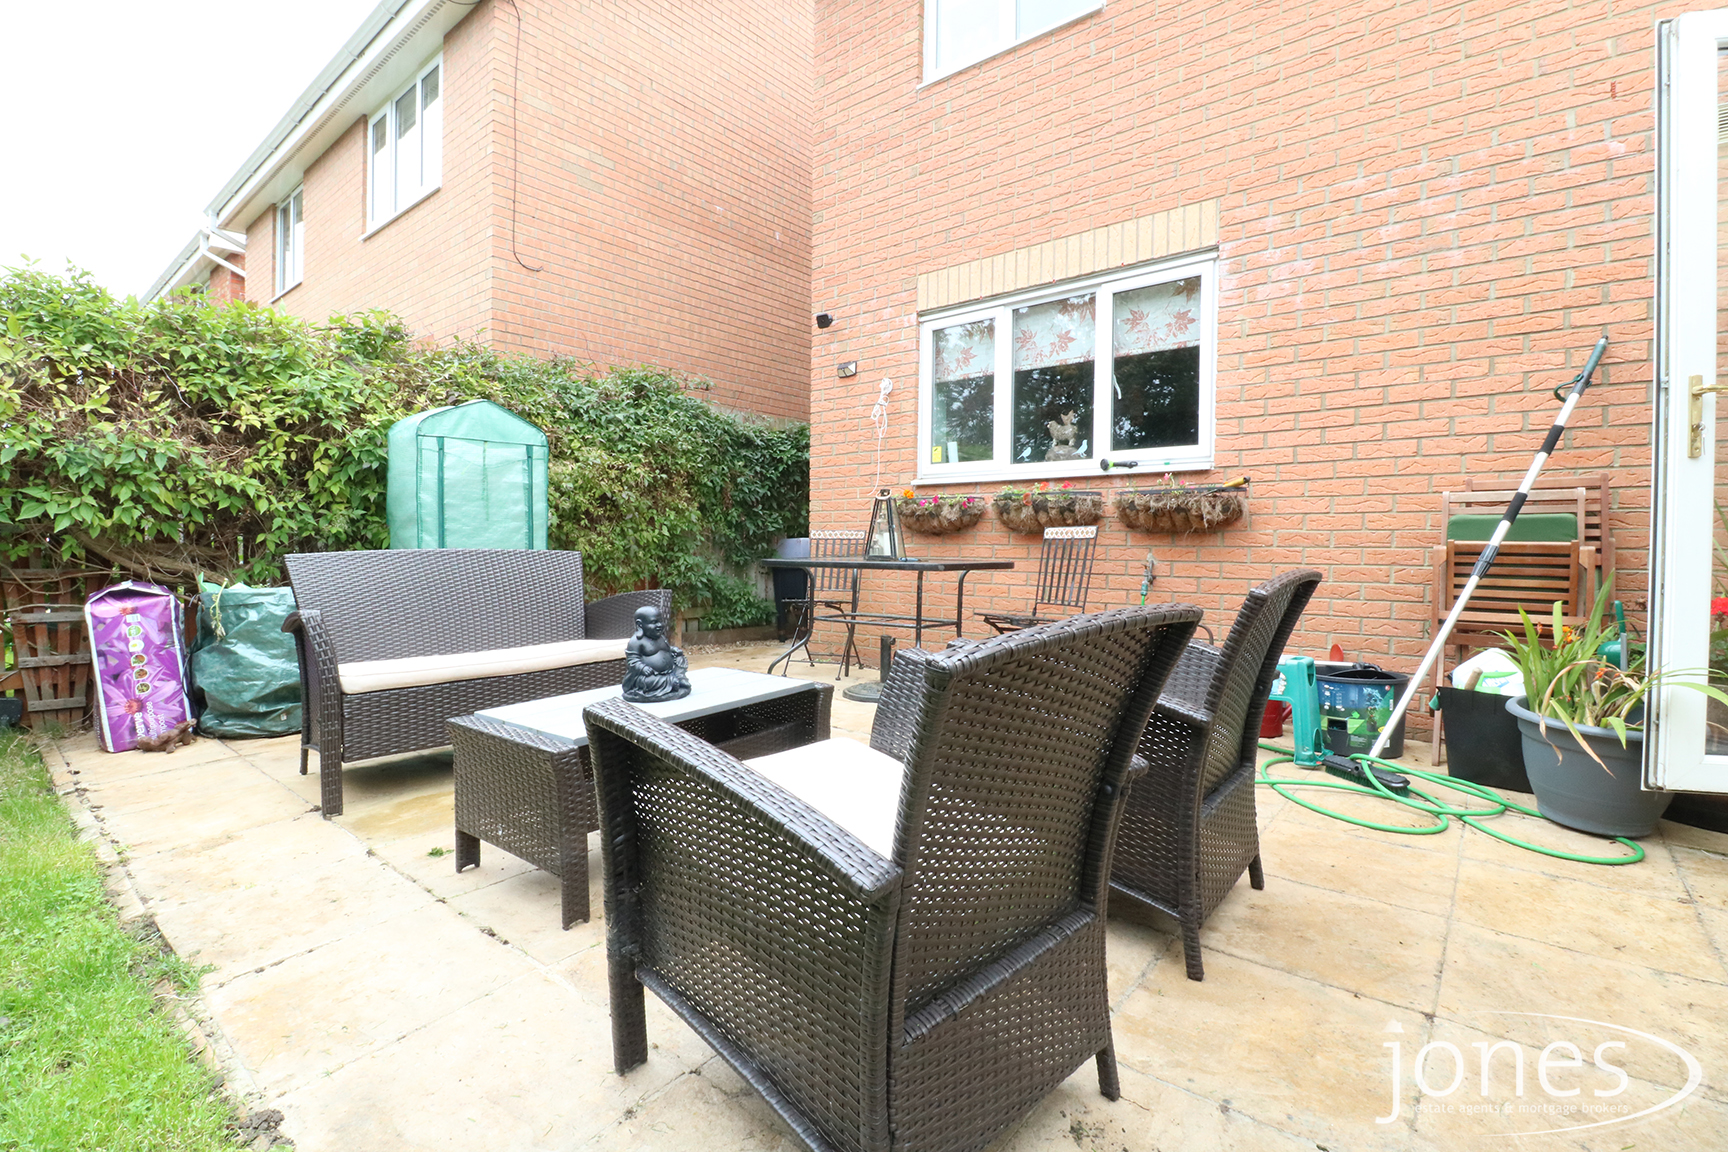 Home for Sale Let - Photo 18 West End Way , Low Hartburn,Stockton on Tees,TS18 3UA